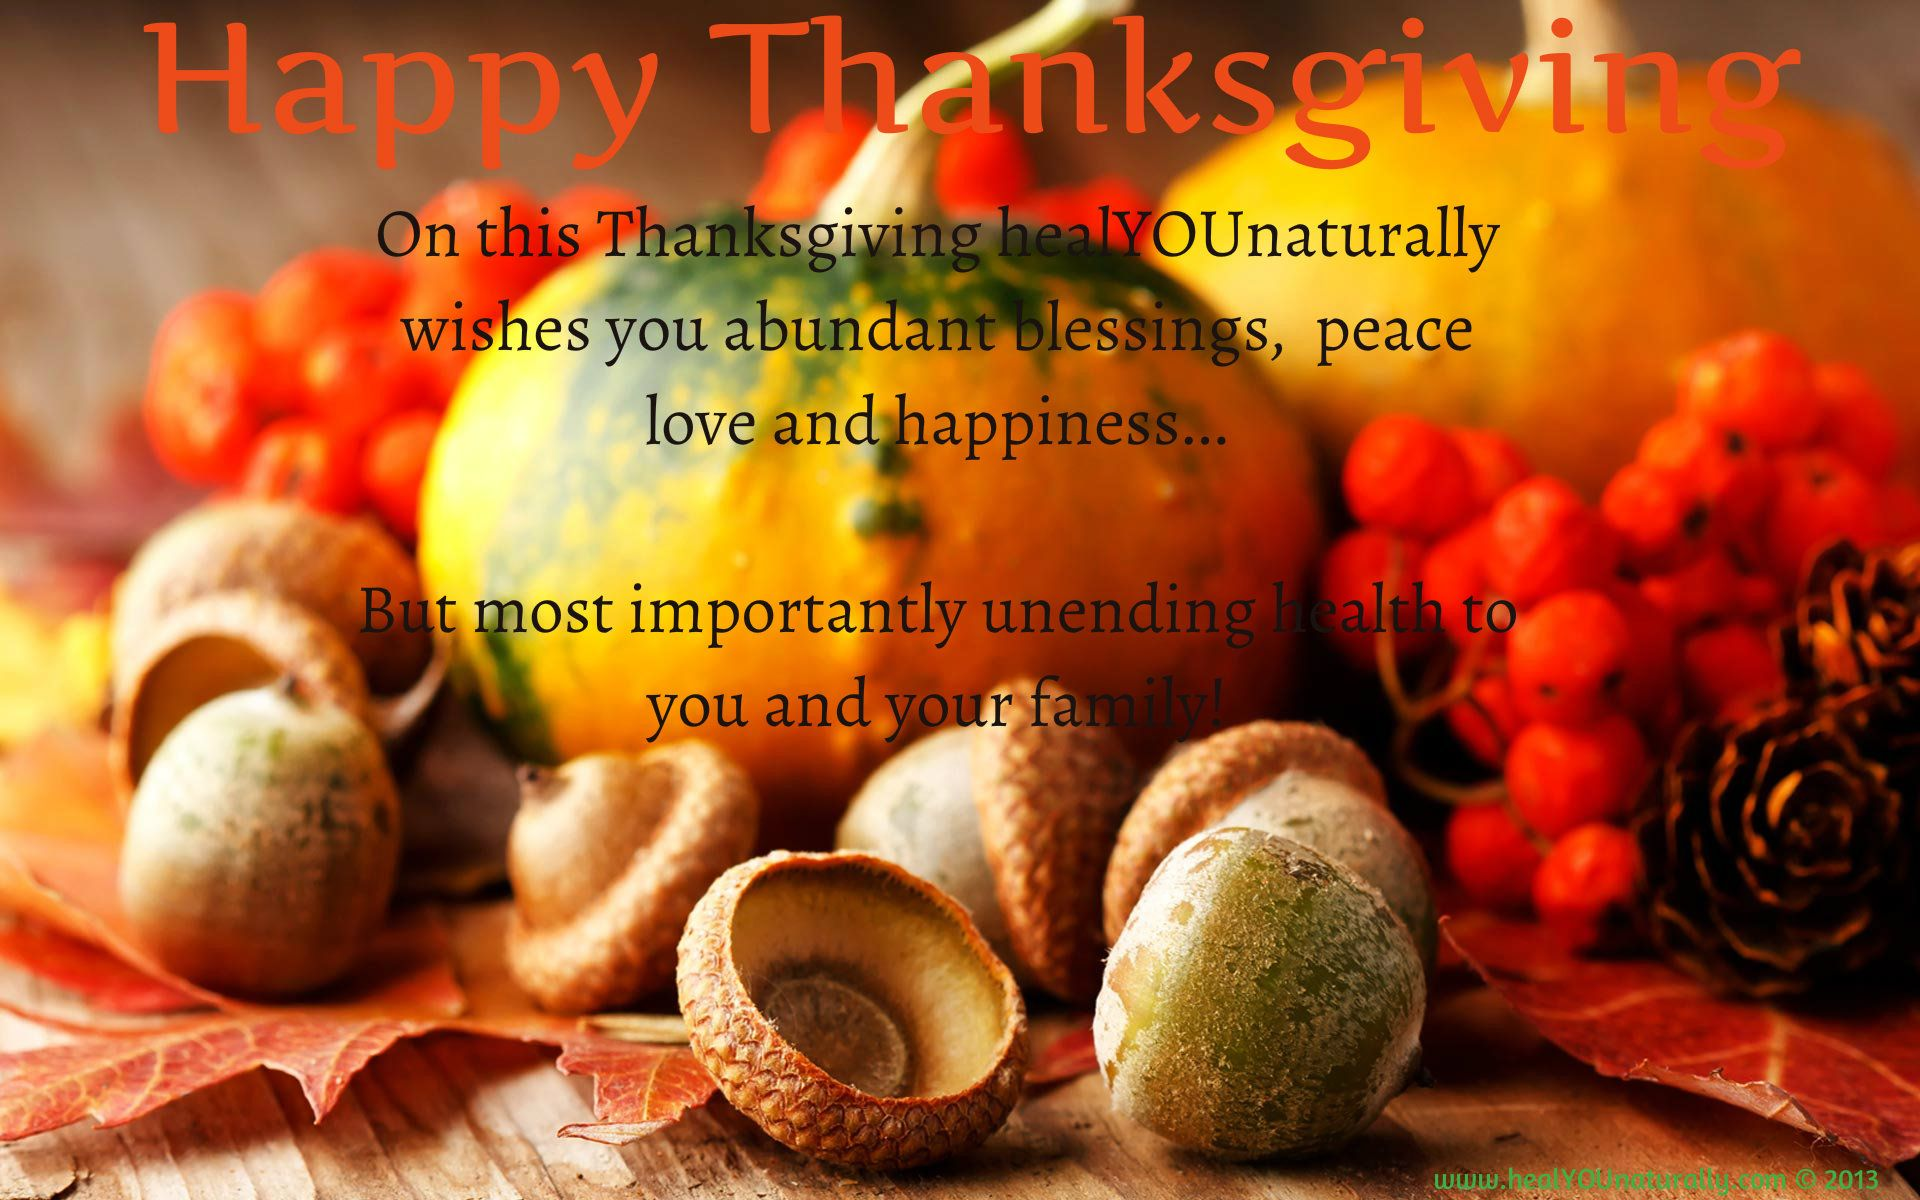 Wishing you a Happy and Healthy Thanksgiving <3